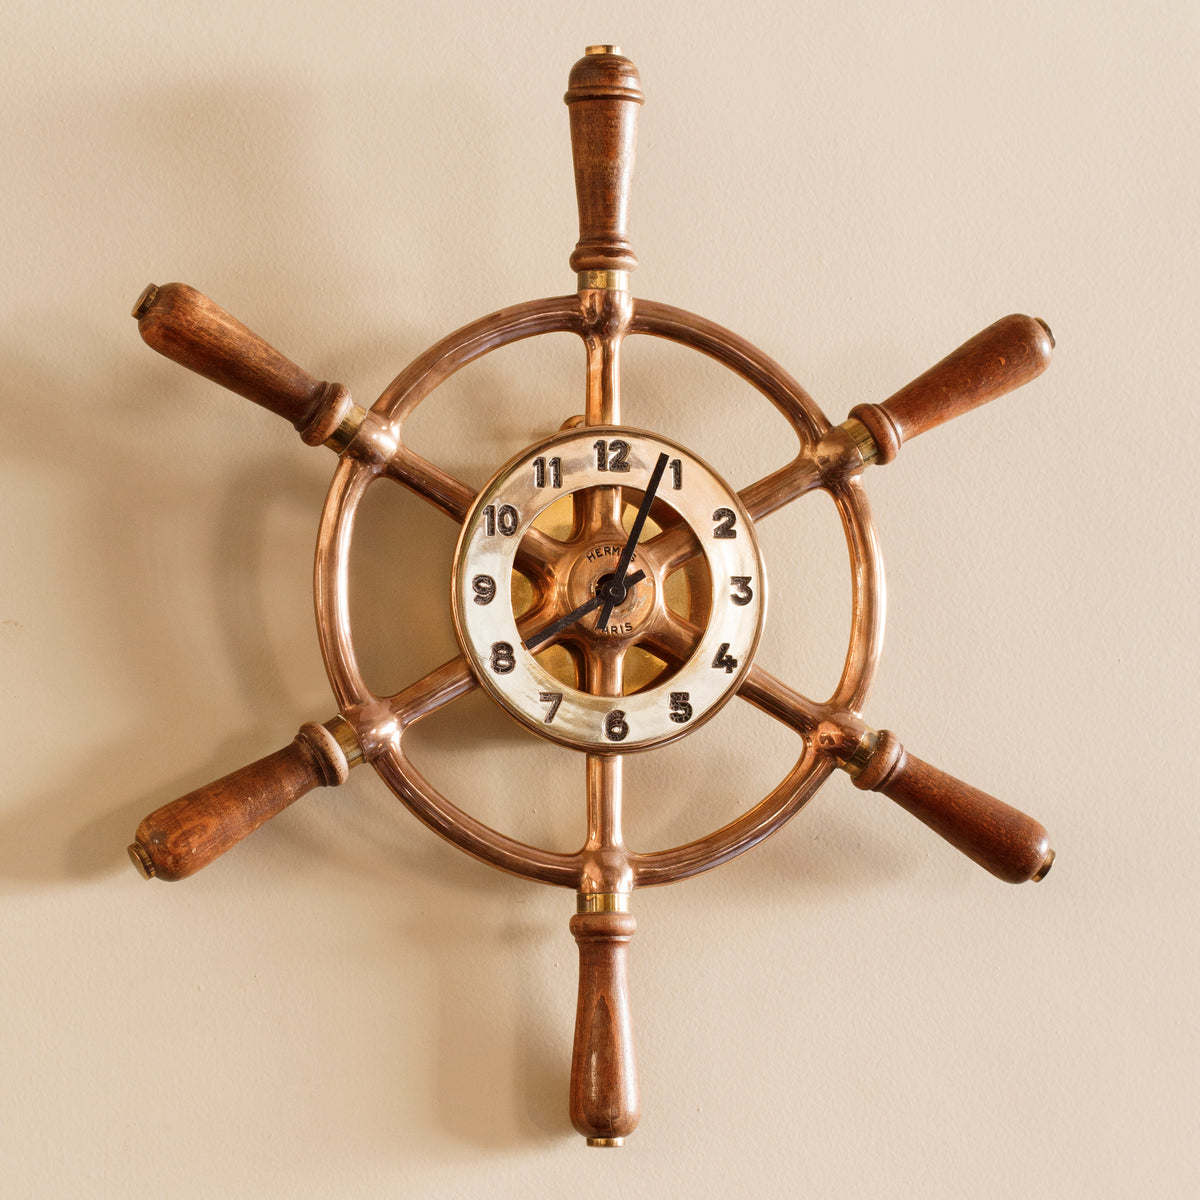 "Orologio ""Timone"" da parete in legno e ottone, Hermès - 1950 - ""Helm"" wood and Brass wall clock by Hermès"